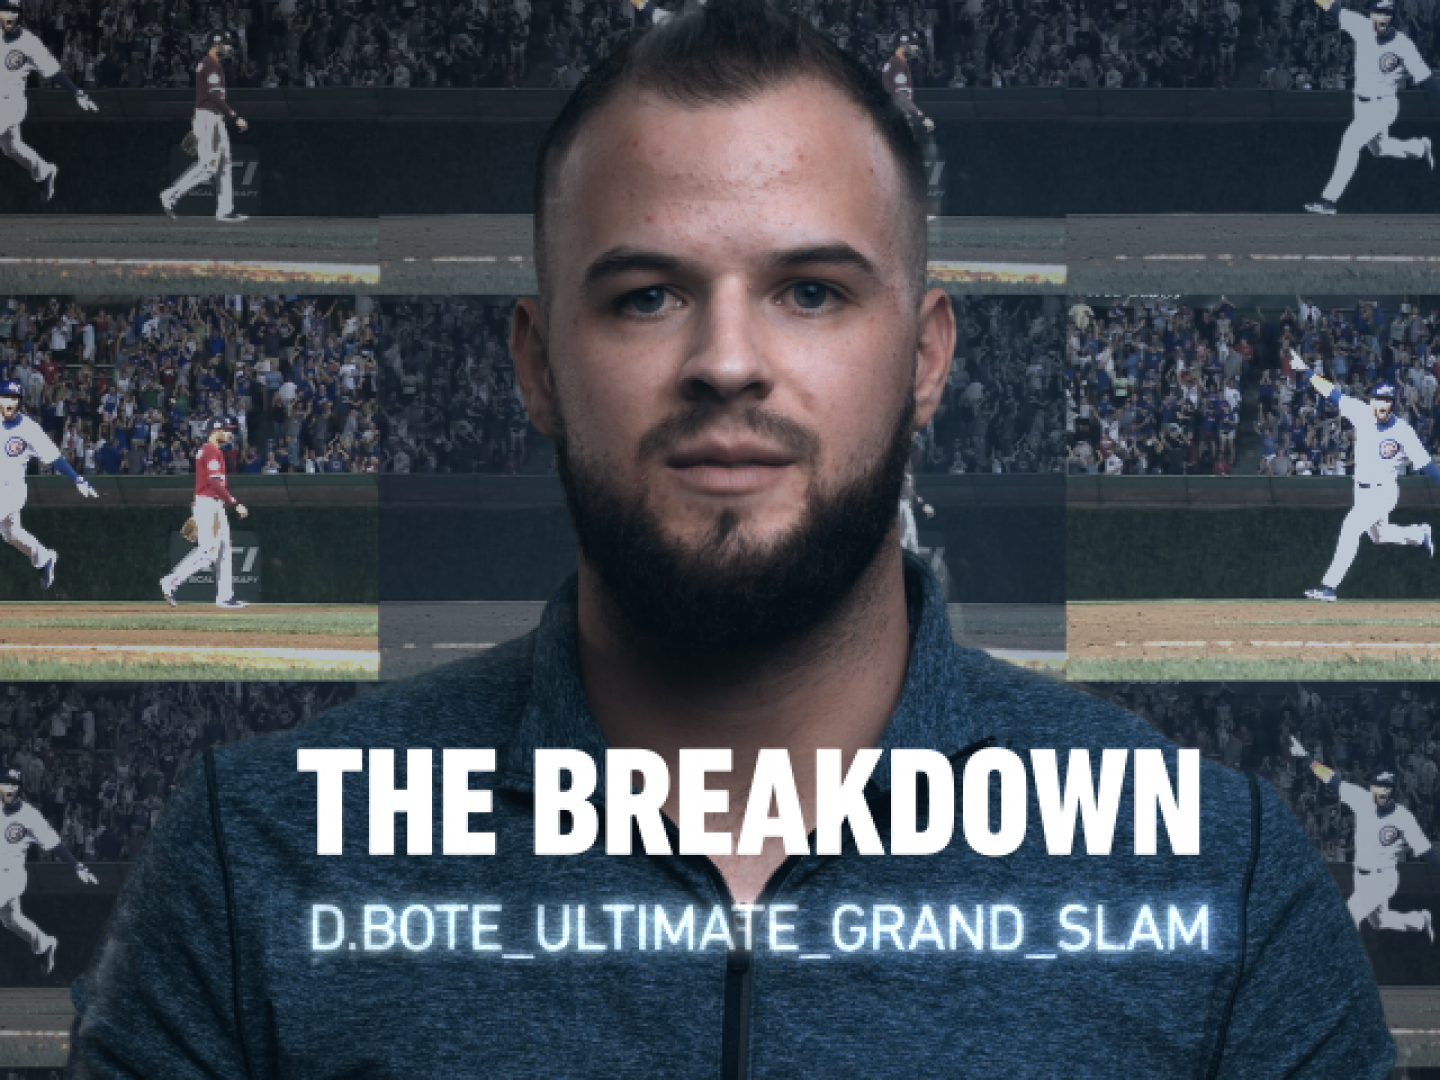 The Breakdown - David Bote's Ultimate Grand Slam Home Run.  Thumbnail